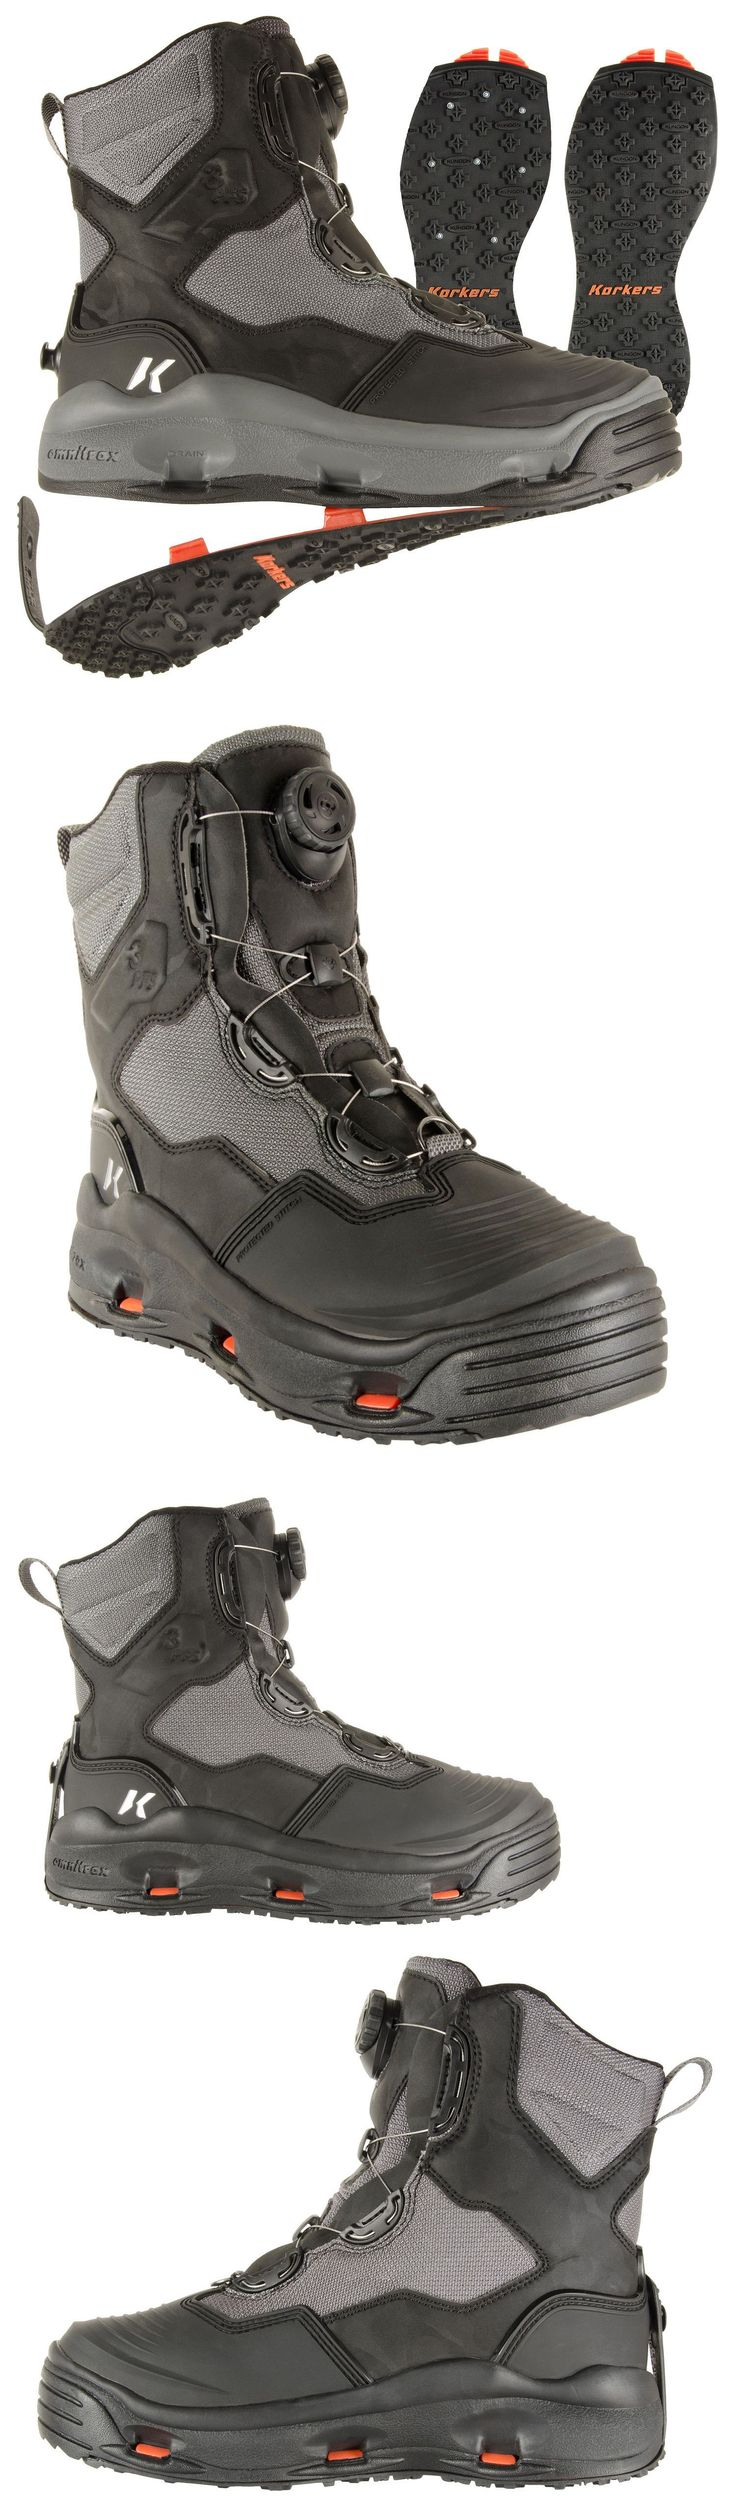 Boots and Shoes 179980: Size #12 Korkers Darkhorse Wading Fishing Boot, Studded +Kling-On Soles -> BUY IT NOW ONLY: $199.95 on eBay! #FishingBoots